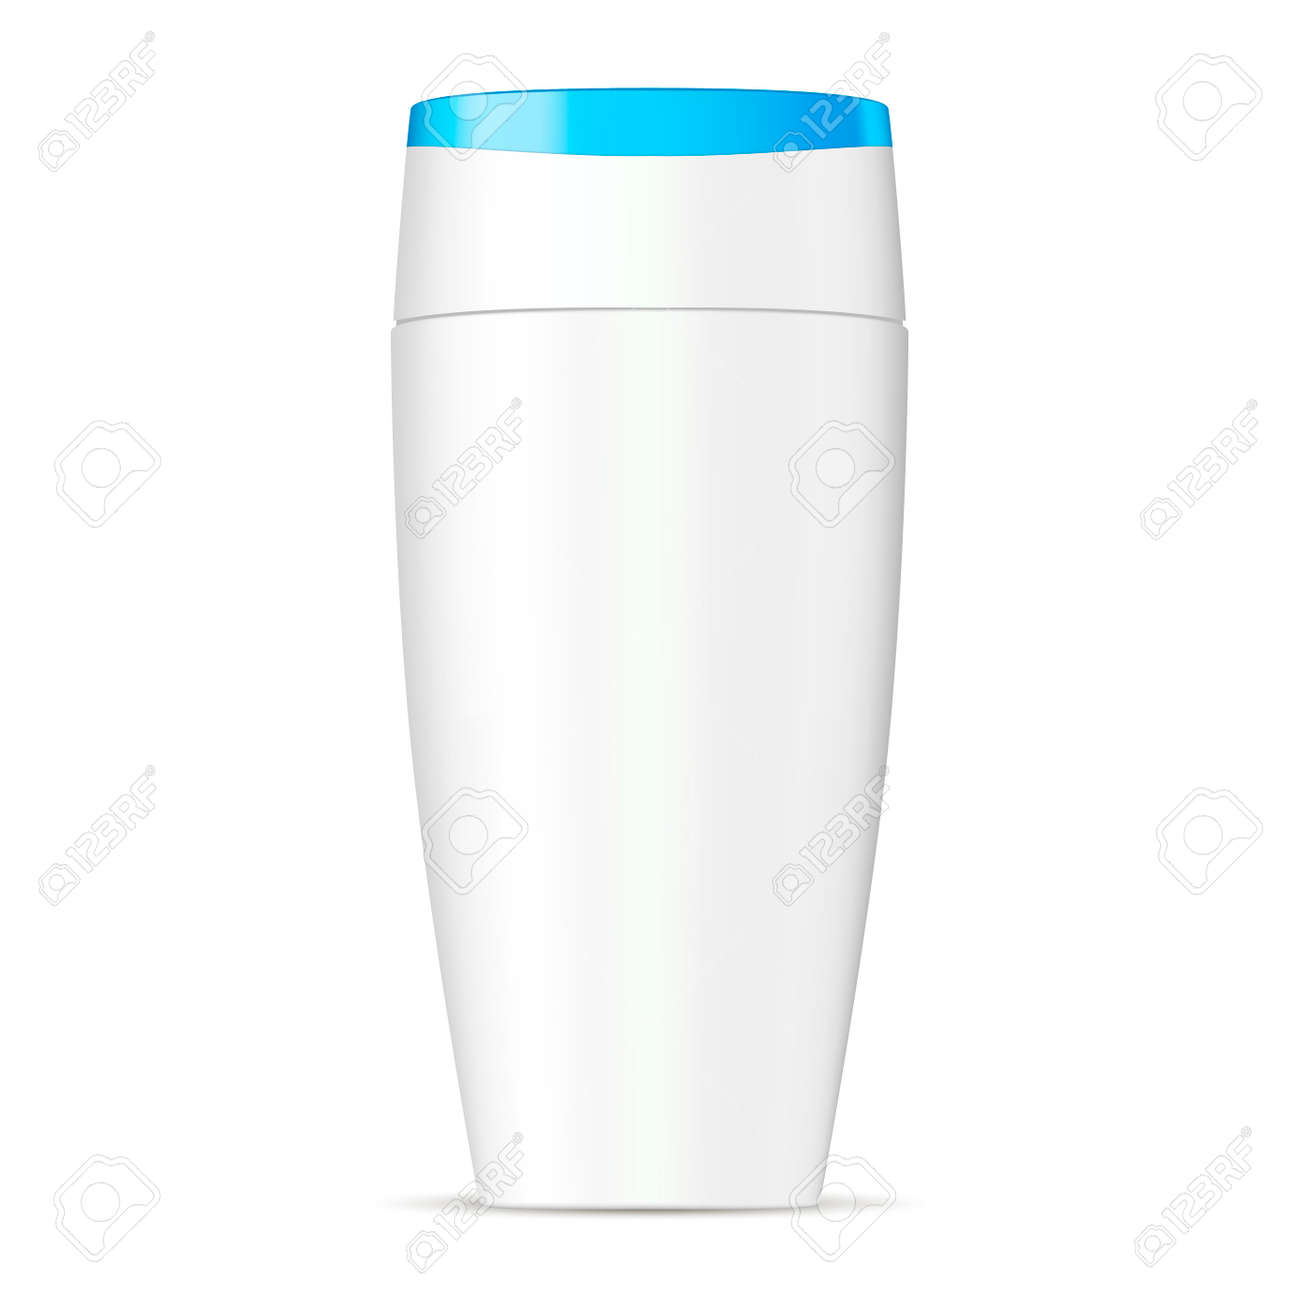 Shampoo Cosmetic Bottle. Isolated White Pet Container with Aqua Blue Lid for Hair Moisturizer, soap, Gel Product. Oval 3d Packaging Template for Advertising. - 126717574